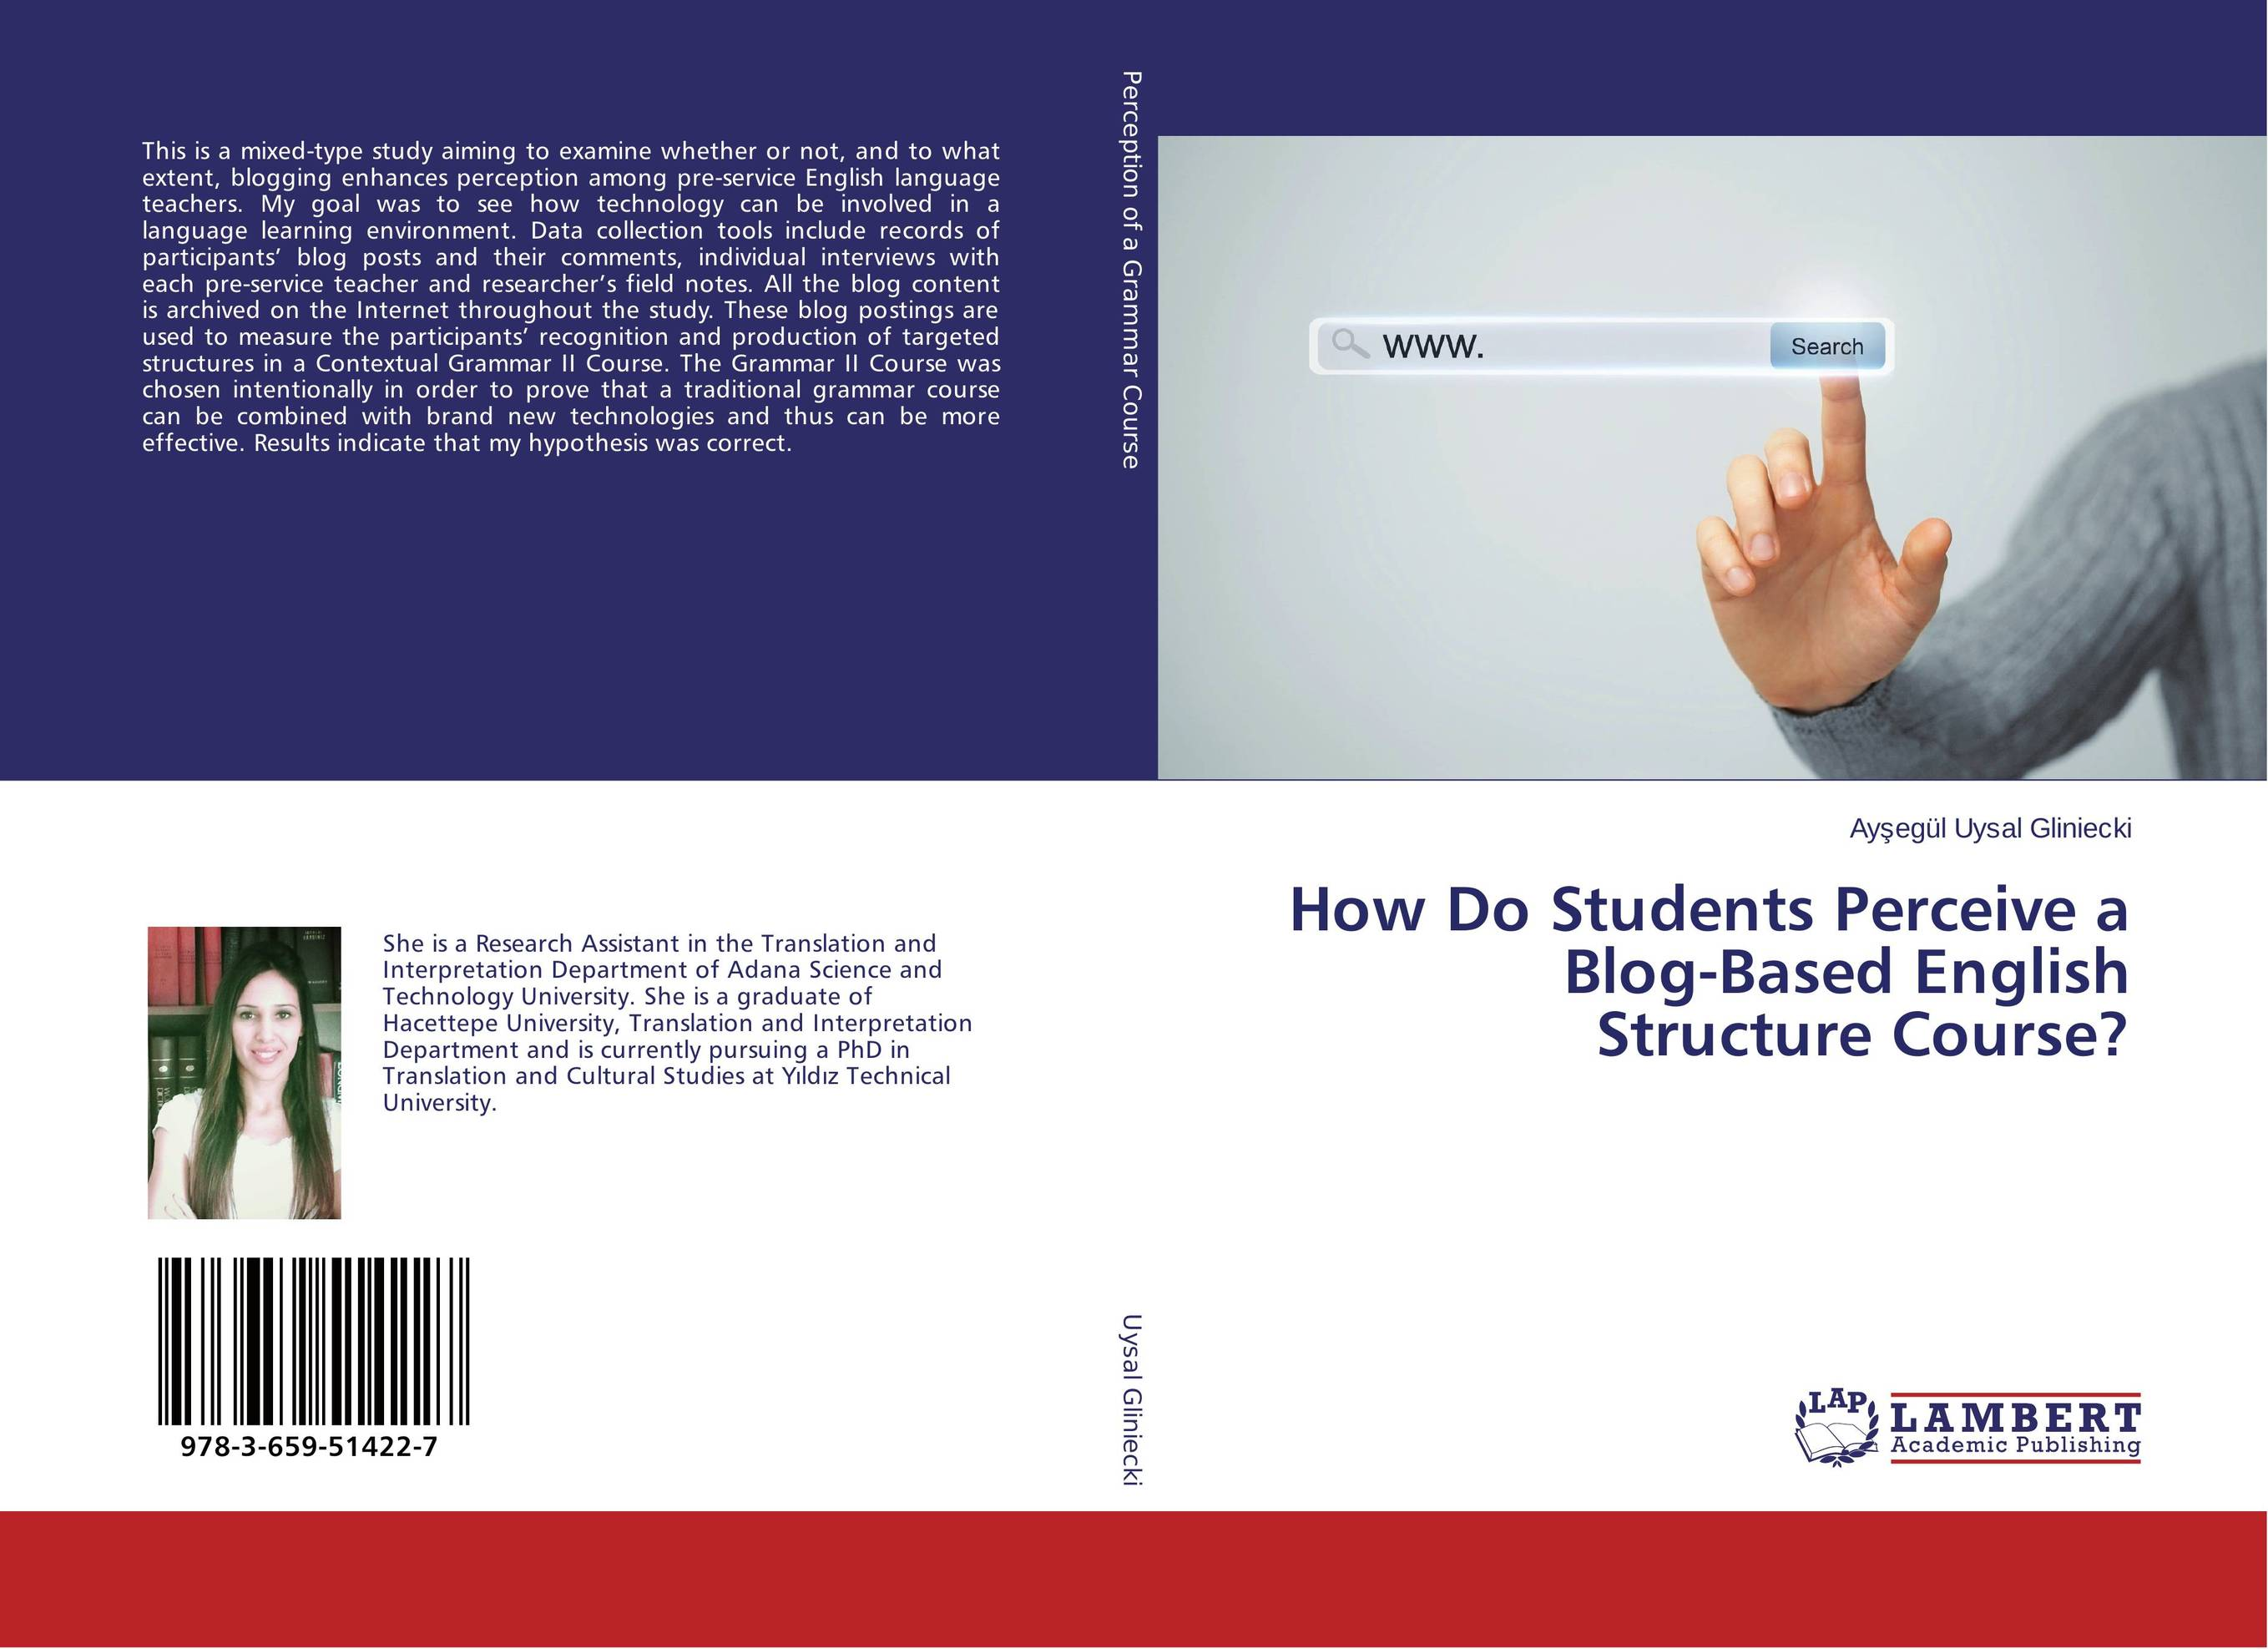 How Do Students Perceive a Blog-Based English Structure Course? ghada abdelhady new des based on elliptic curve